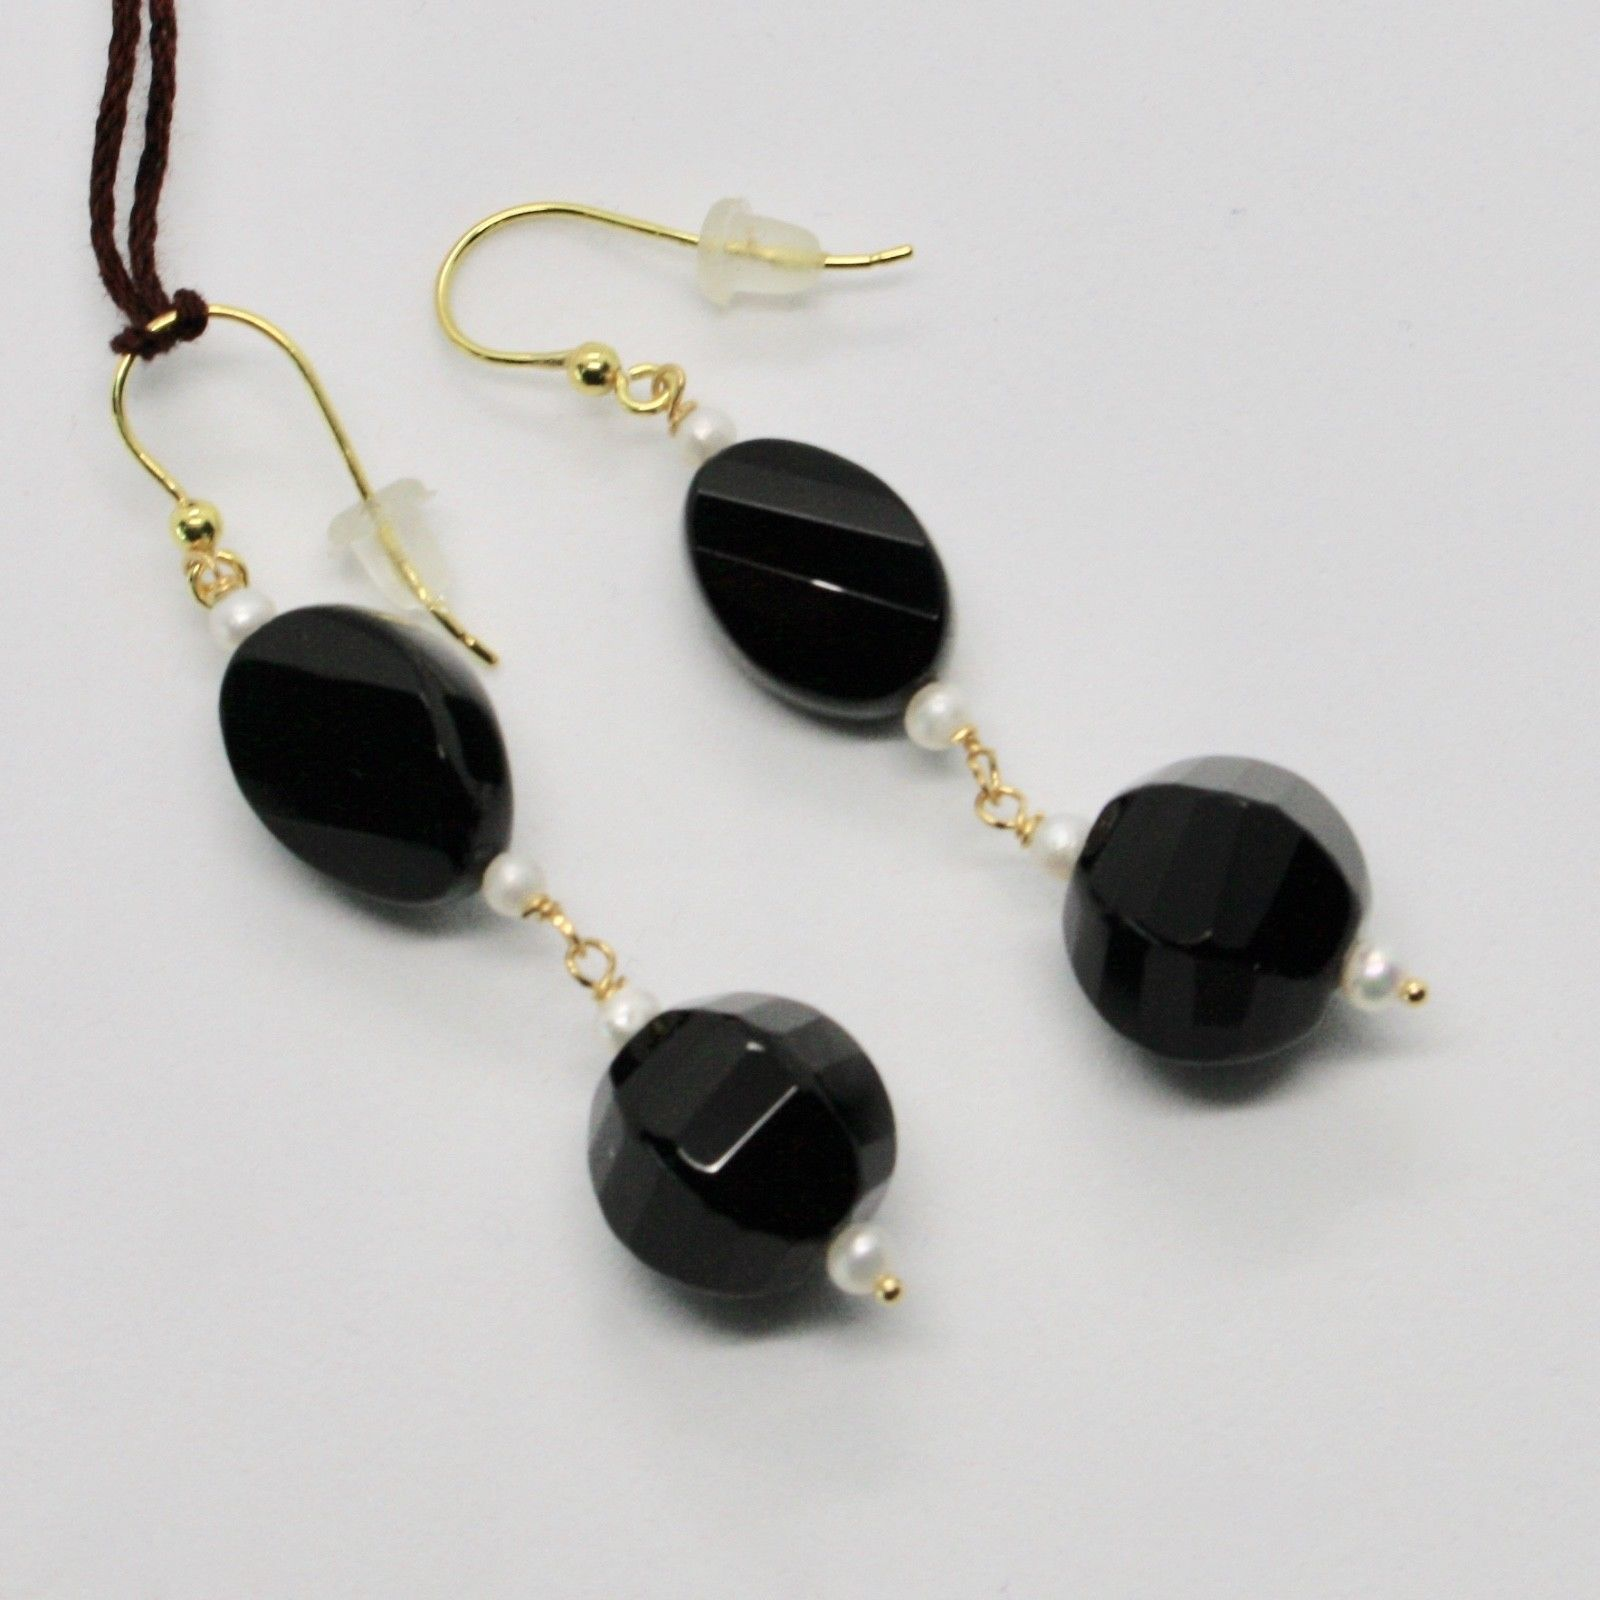 YELLOW GOLD EARRINGS 18KT 750 ONYX NATURAL BLACK MINI PEARLS OF WATER DOLCE